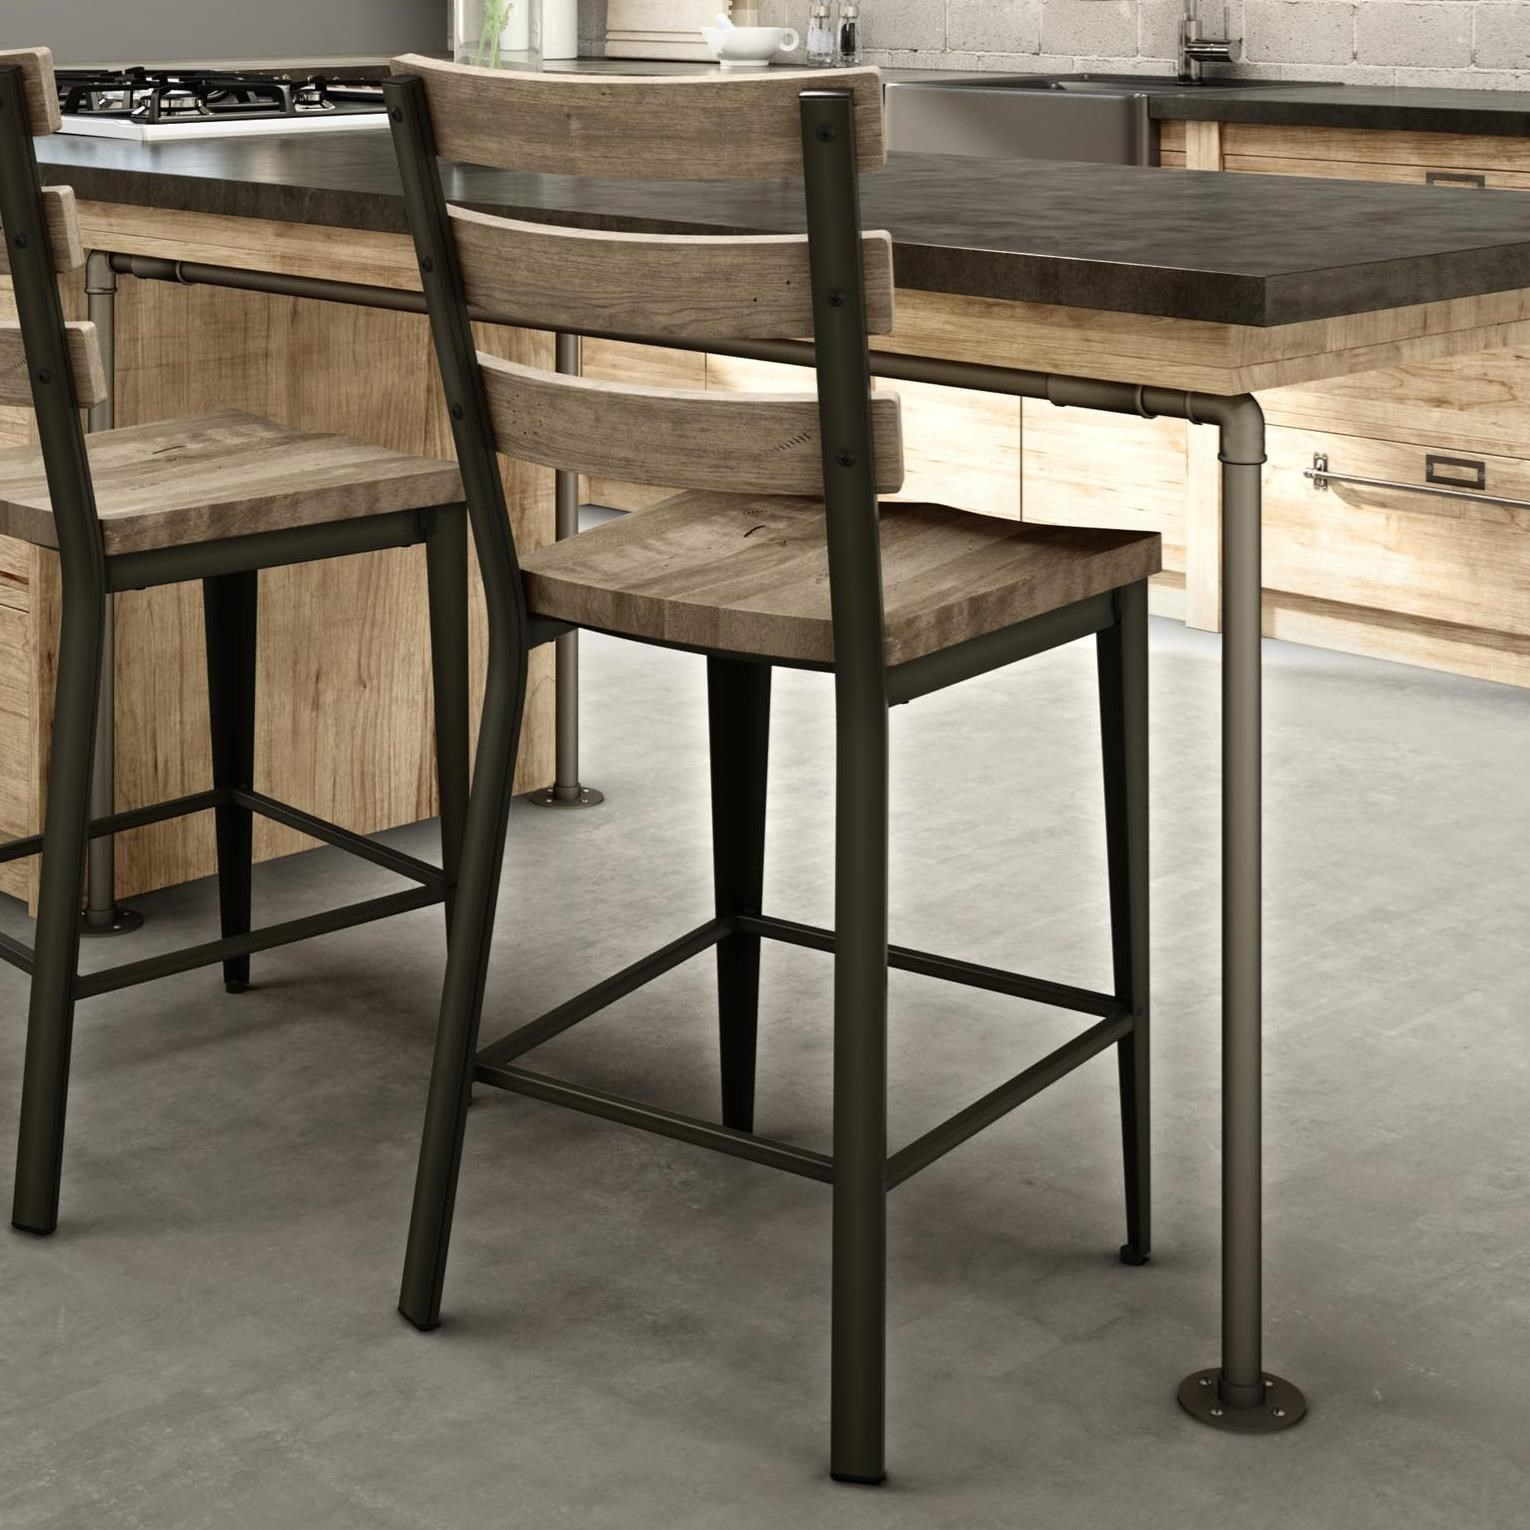 "Industrial 26"" Dexter Counter Stool with Wood Seat by Amisco at Dinette Depot"